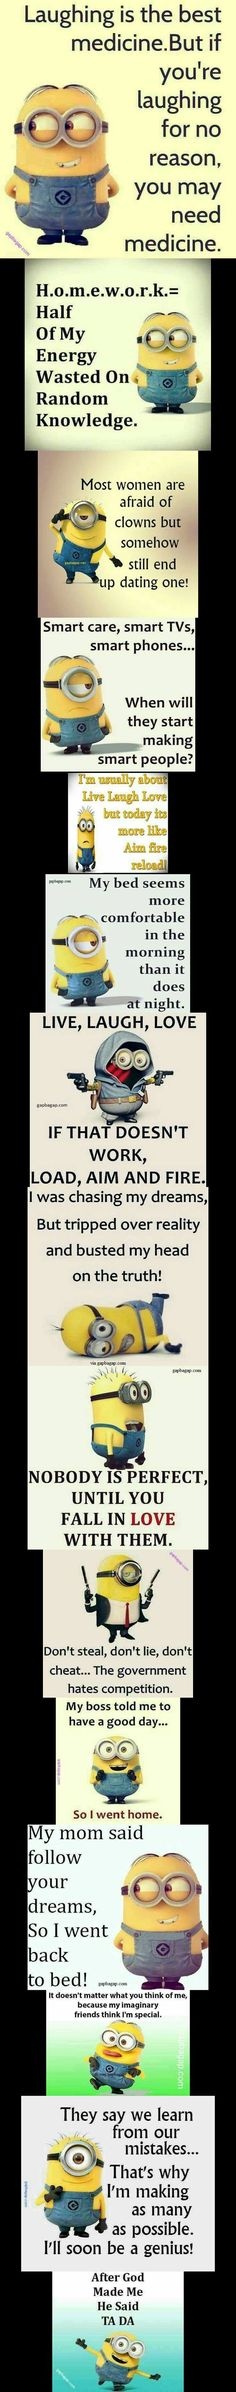 Top 15 Funny Minions Quotes